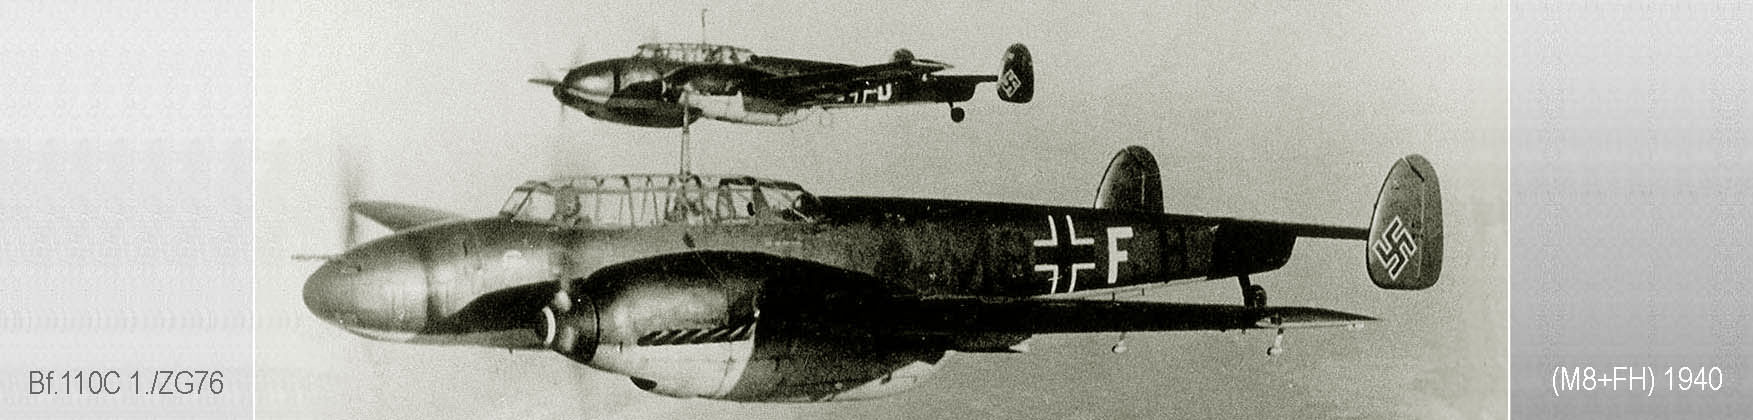 Bf 110C Zerstorer 1./ZG76 (M8+FH) over the North Sea 1940